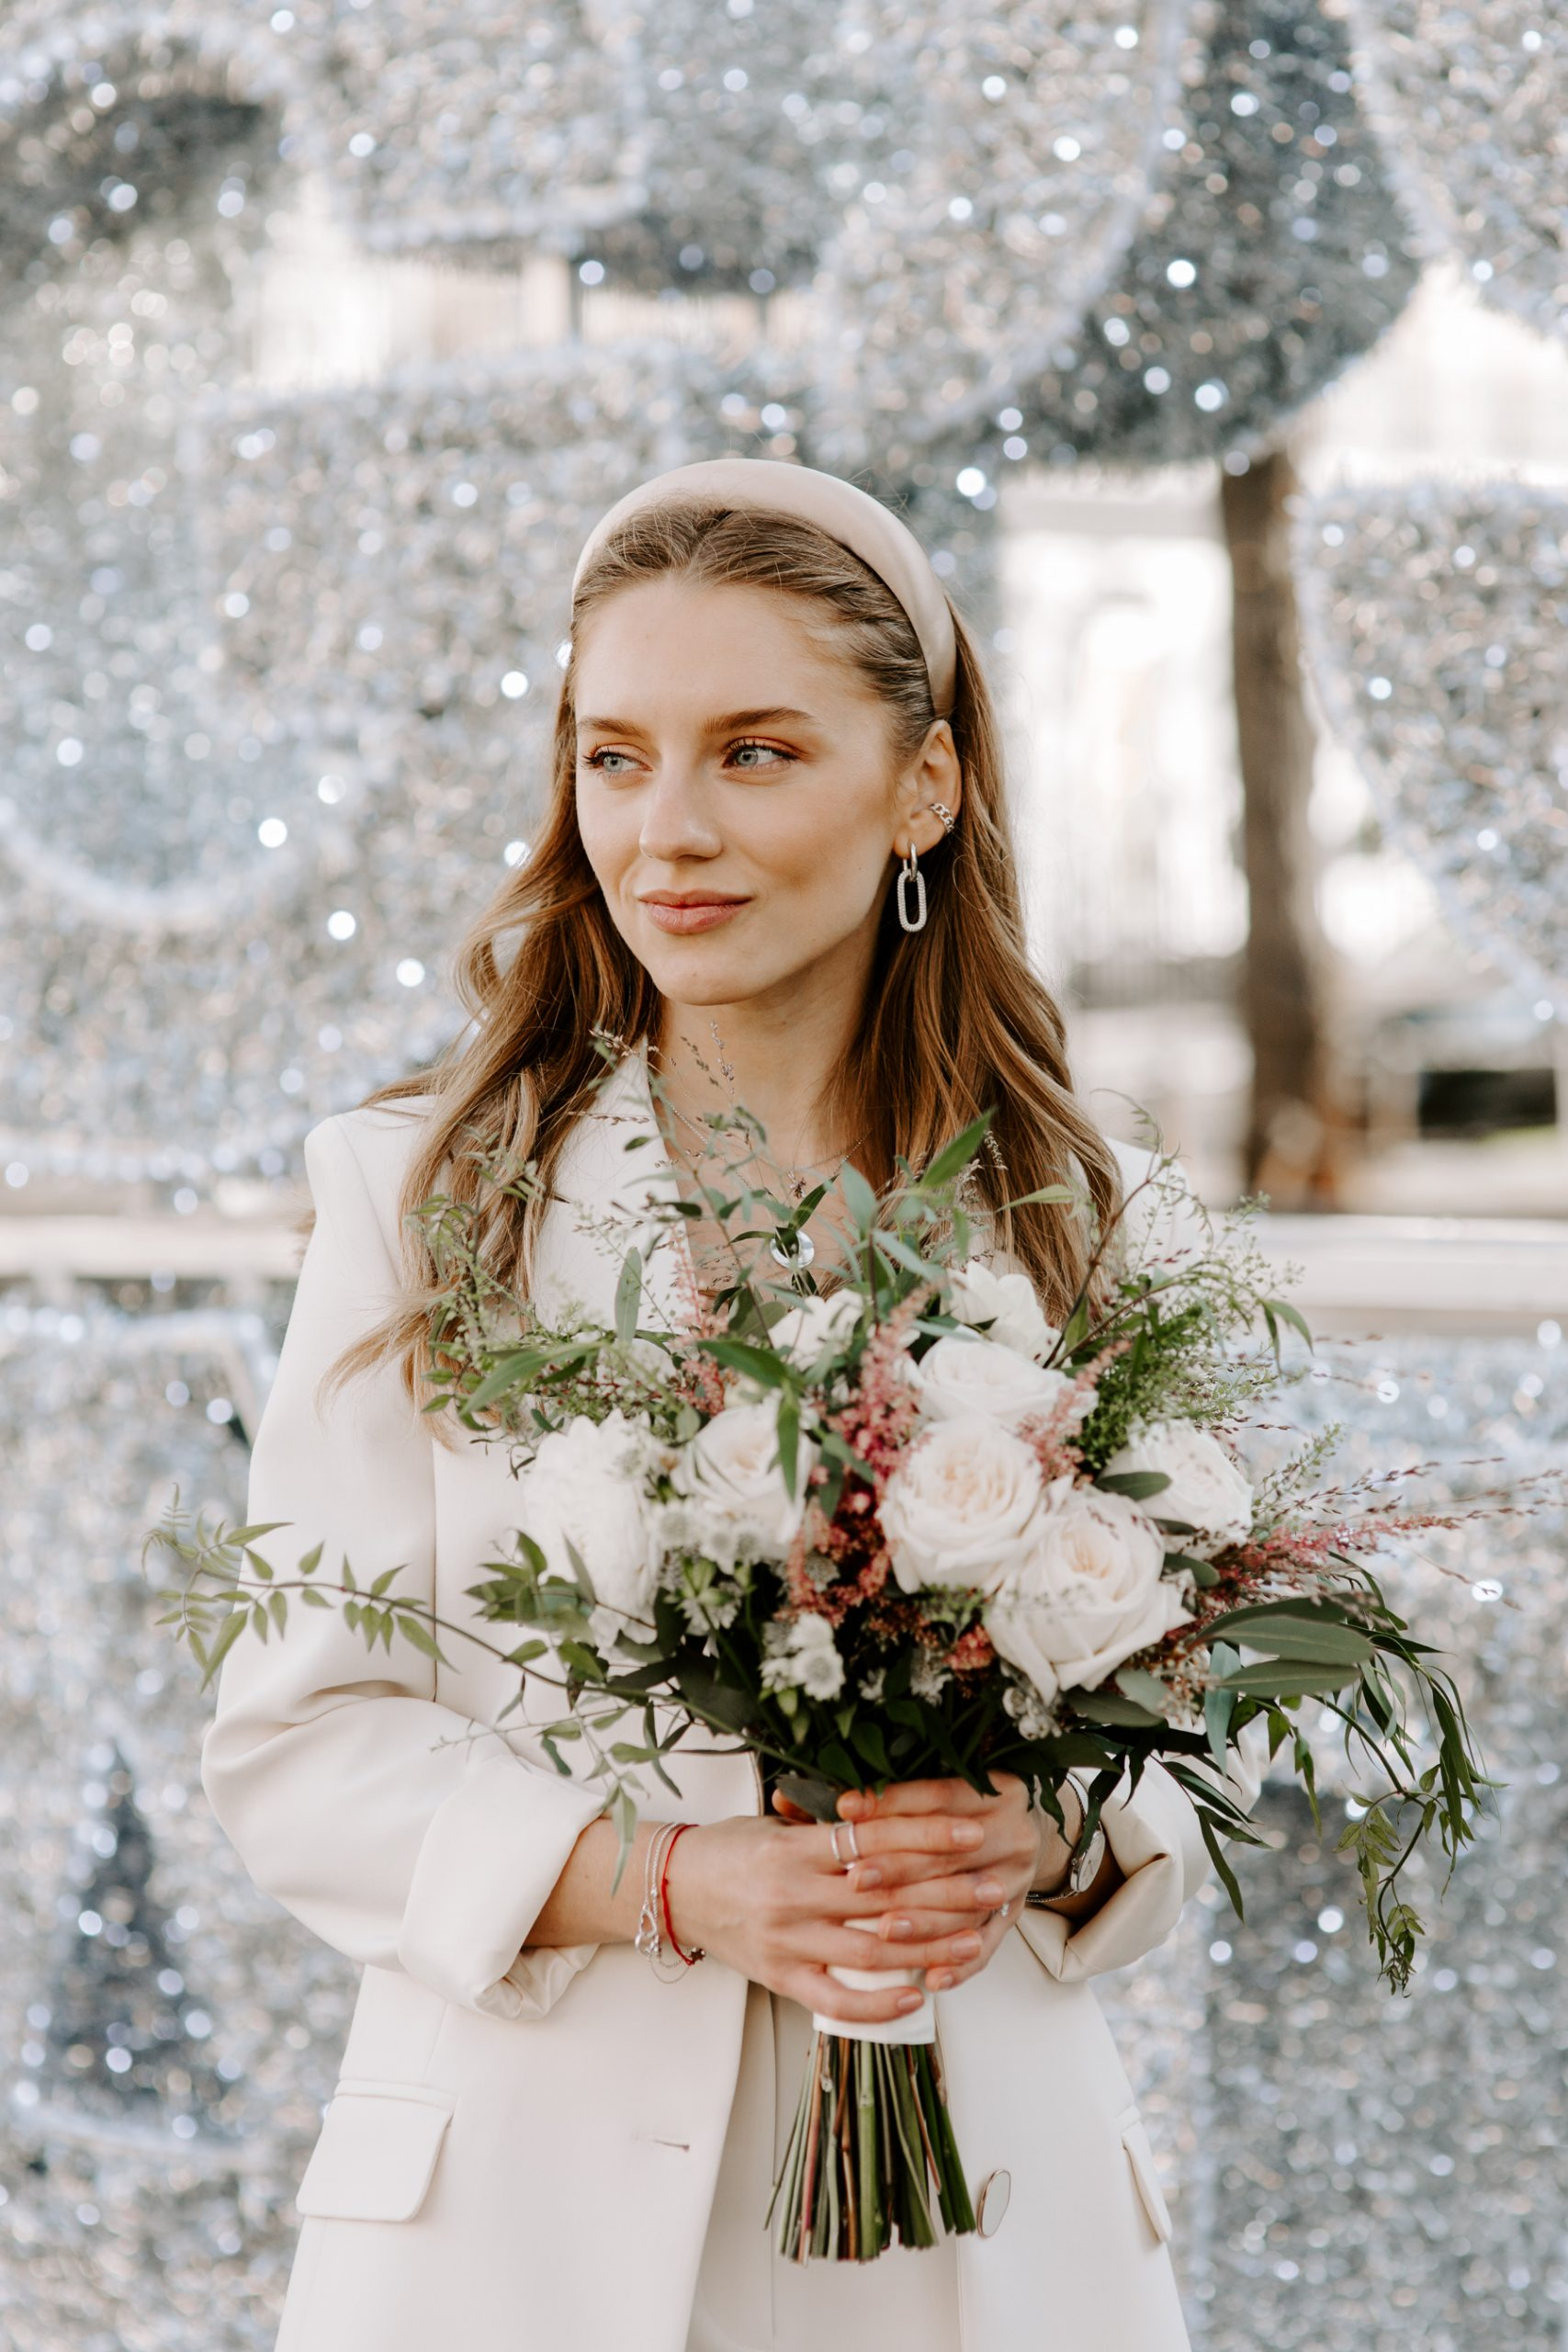 Bride holding a bouquet in front of London Christmas lights